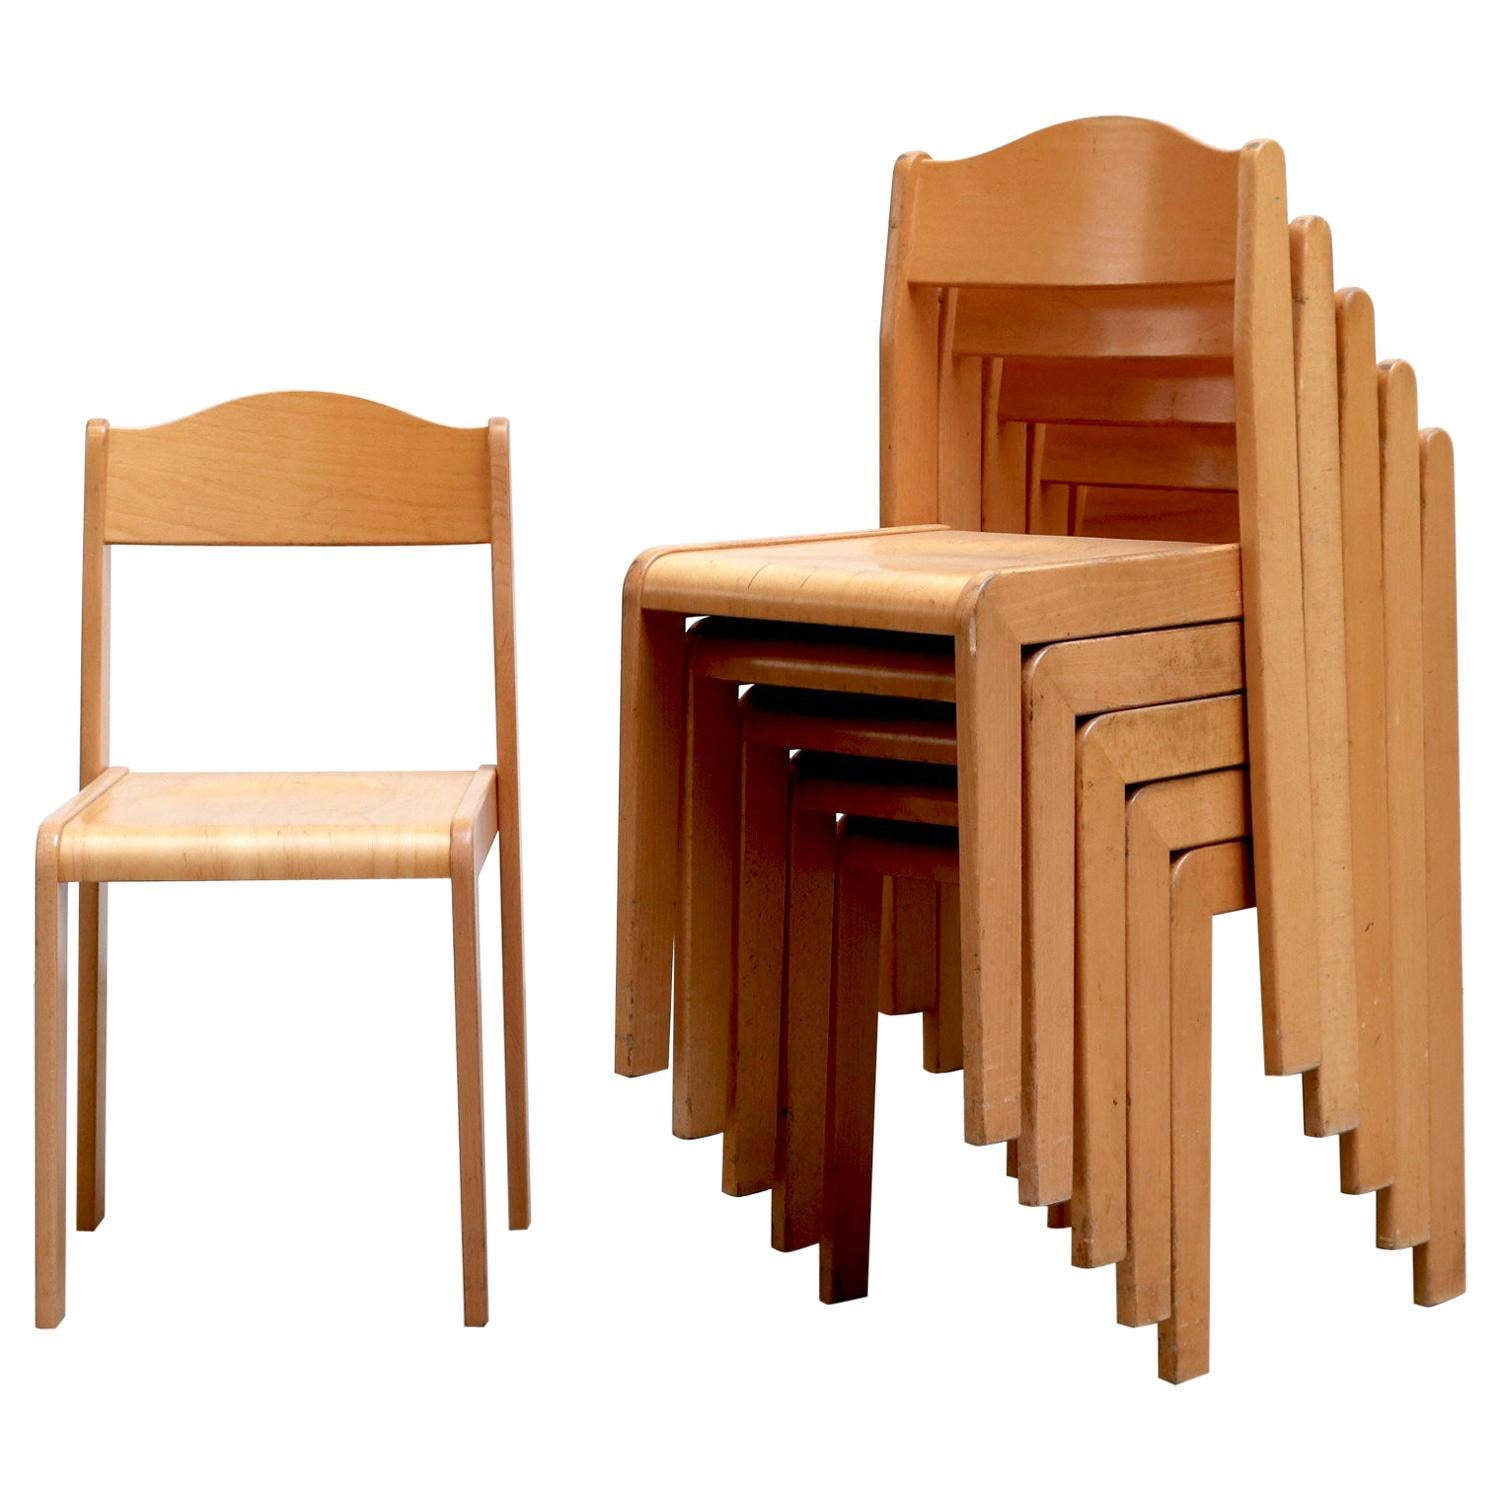 Sven Markelius Style Birch Stacking Chairs with Hump Backs